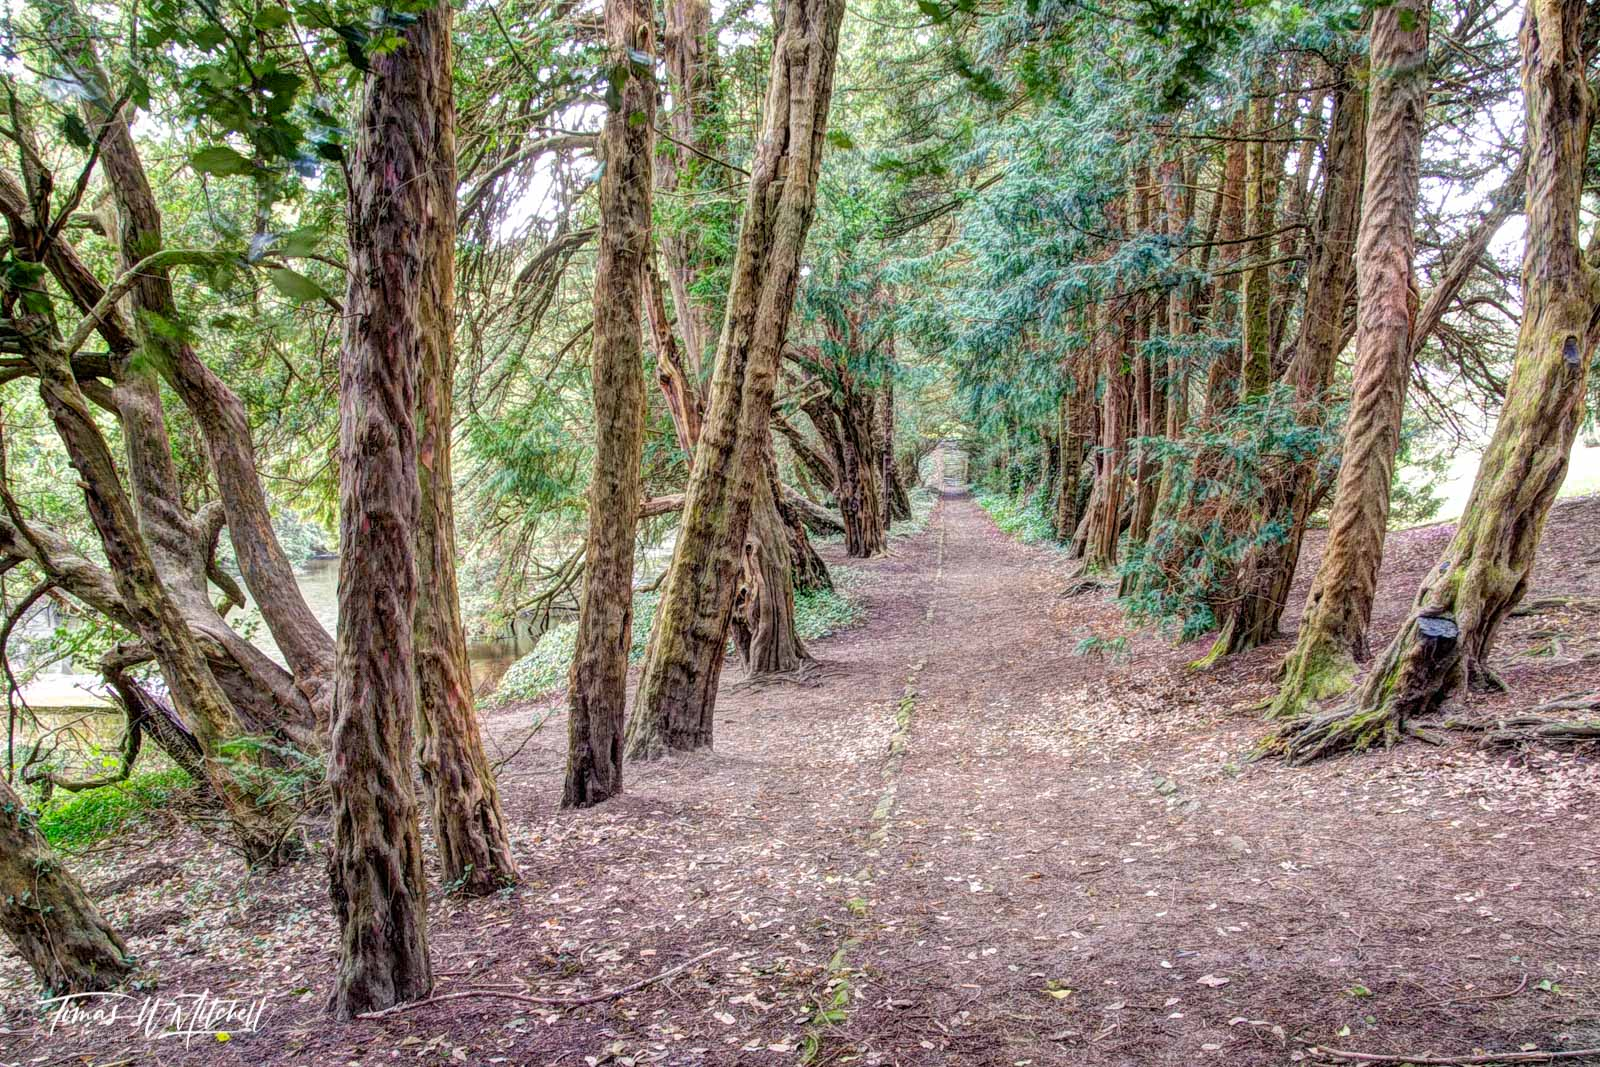 limited edition, museum grade, fine art, prints, ent, path, derbyshire, england, hardwick hall, trees, wisdom, ancient, earth, J.R.R. Tolkien, ents, shepherds, forests, moss, photograph, forest, gnarl, photo